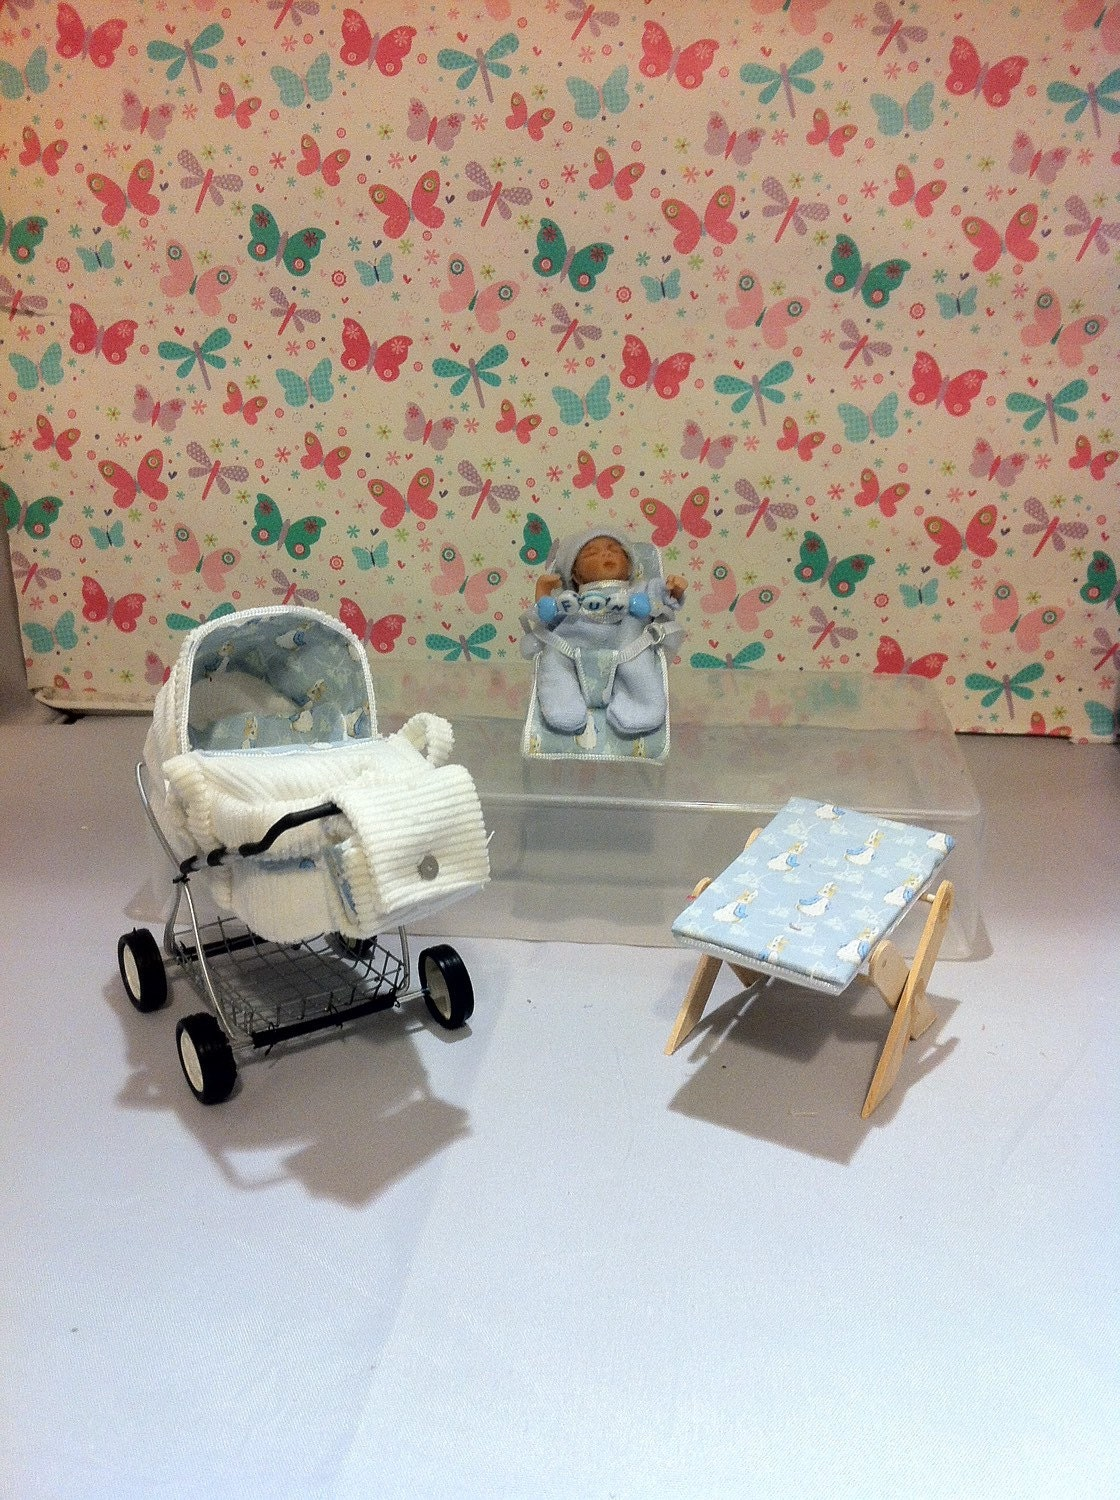 Dolls House Miniature OOAK Modern Carry Cot Baby Nursery Set Beatix Potter themed